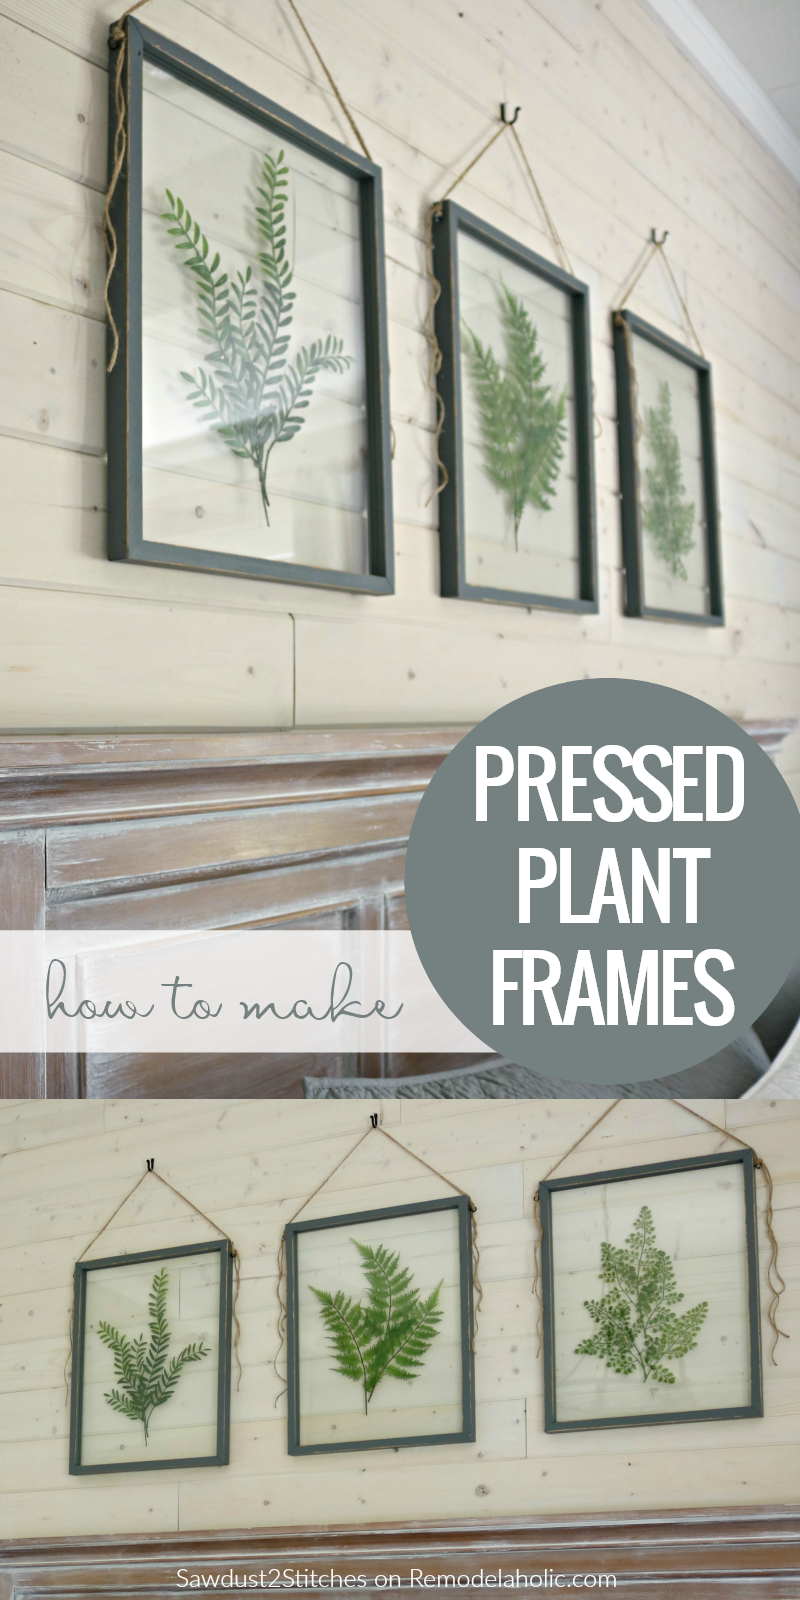 How To Make Your Own DIY Pressed Plant Frame | Build a DIY pressed plant frame using faux greenery and affordable glass for a gorgeous wall art display that will fit any style, farmhouse to modern. Full tutorial on Remodelaholic.com. #DIY #HomeDecor #kitchendecor #roomdecor